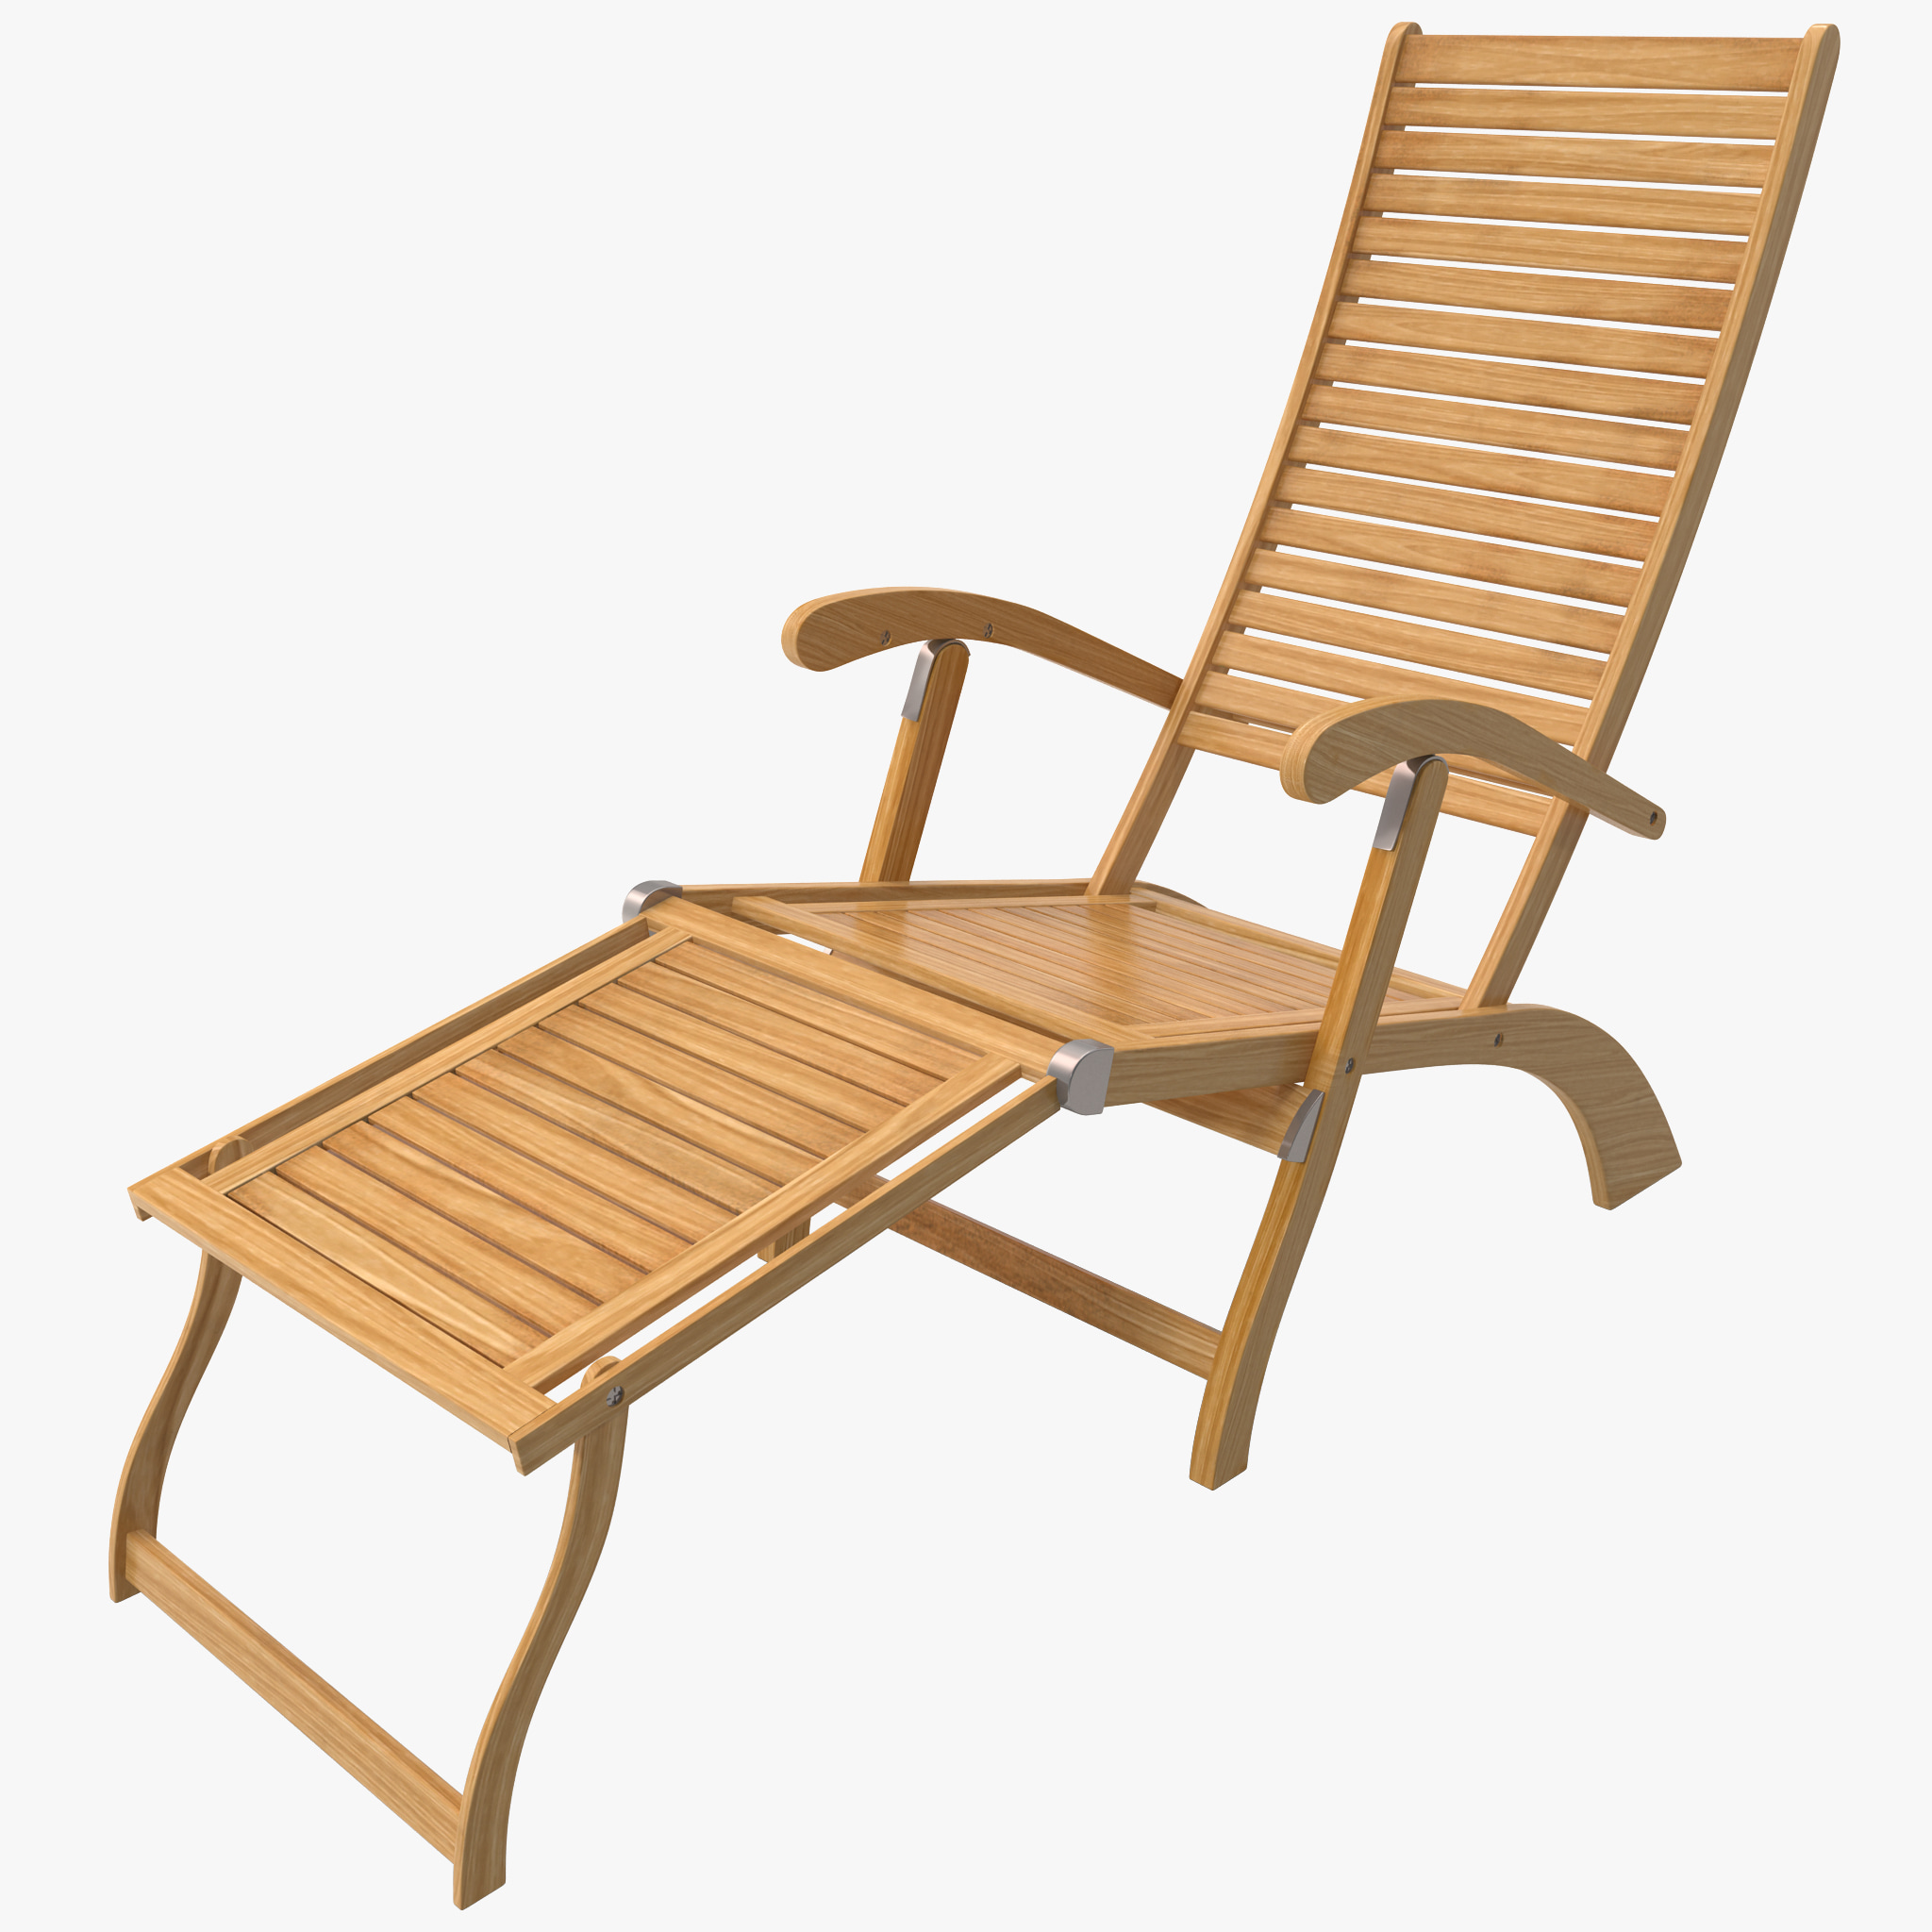 Chaise lounge beach chair 3d c4d for Chaise lounge beach